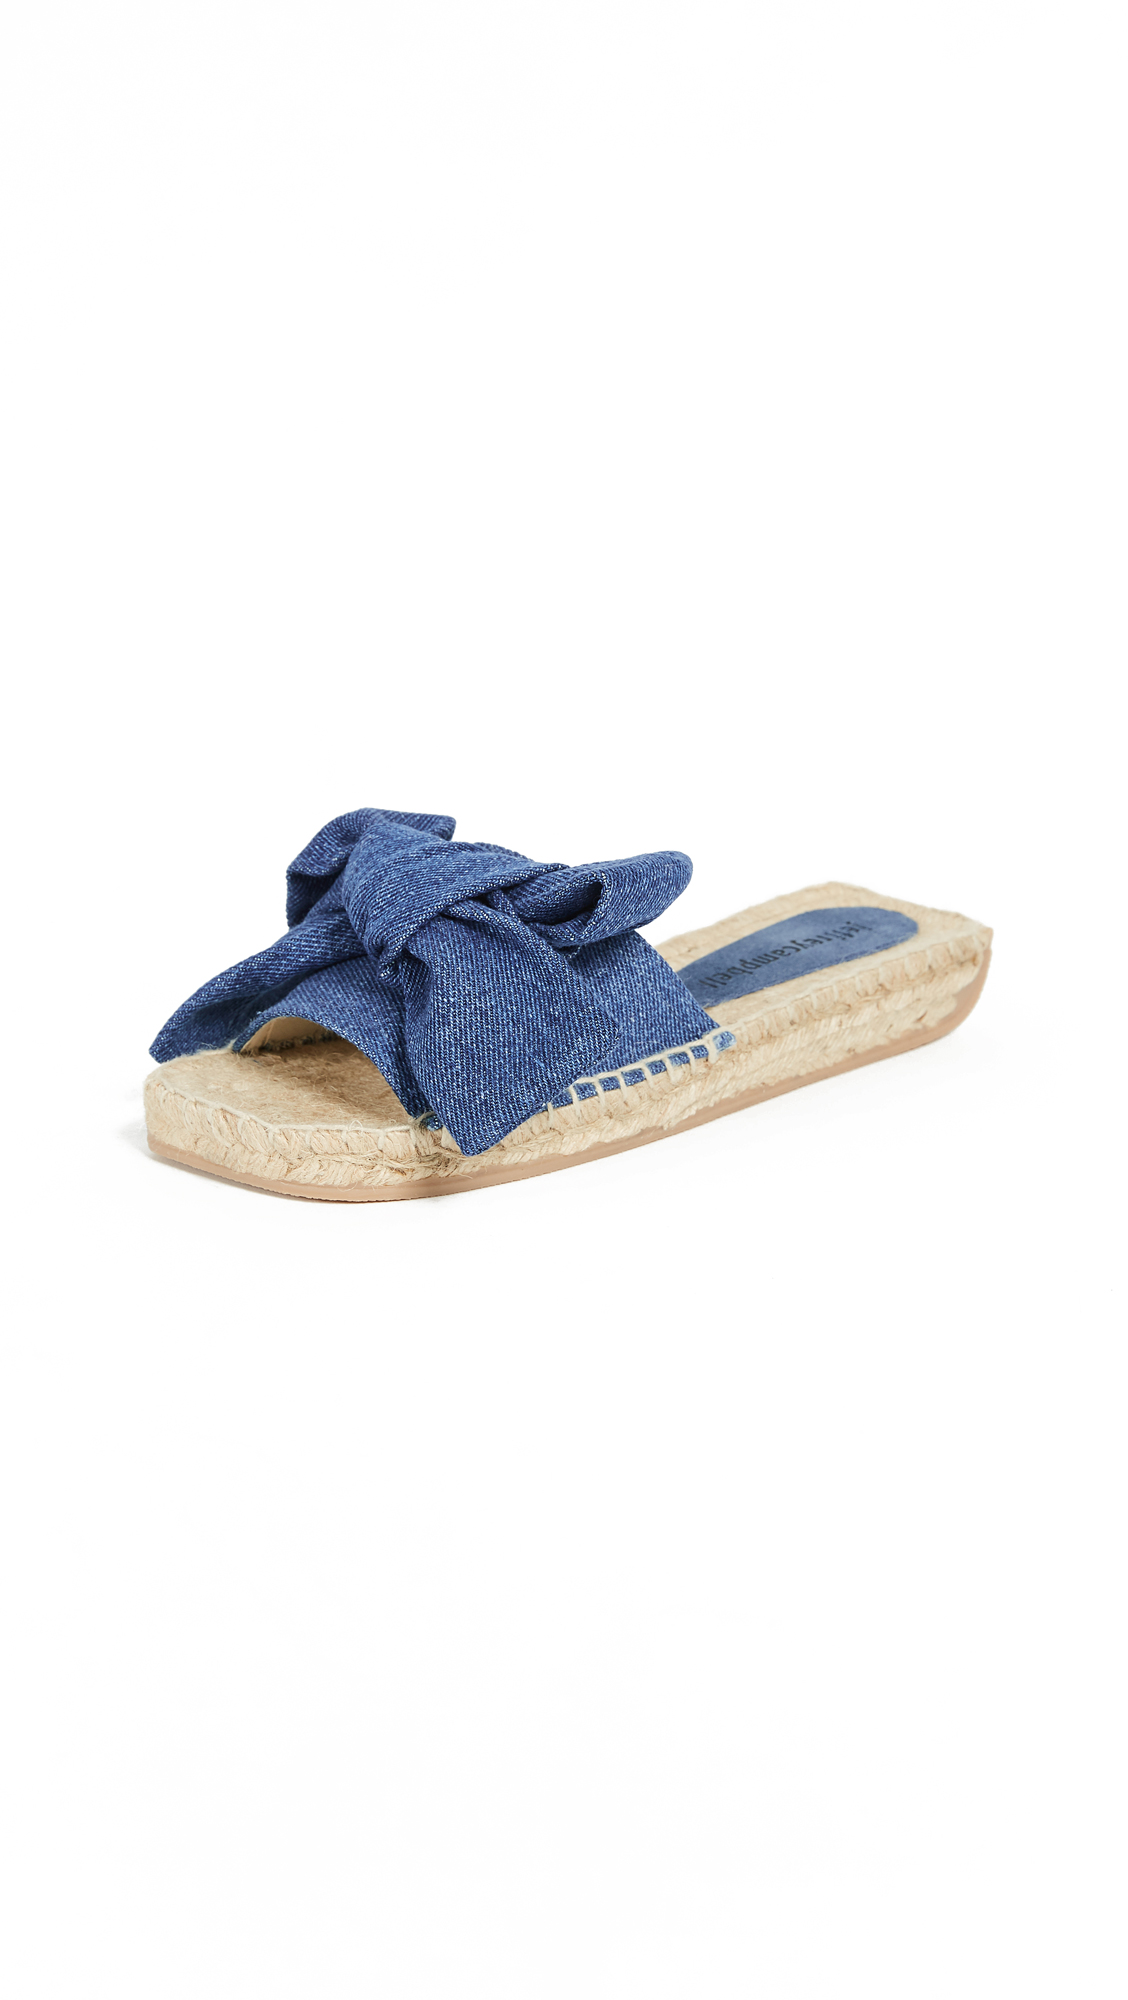 Jeffrey Campbell Denim Bow Slides - Denim